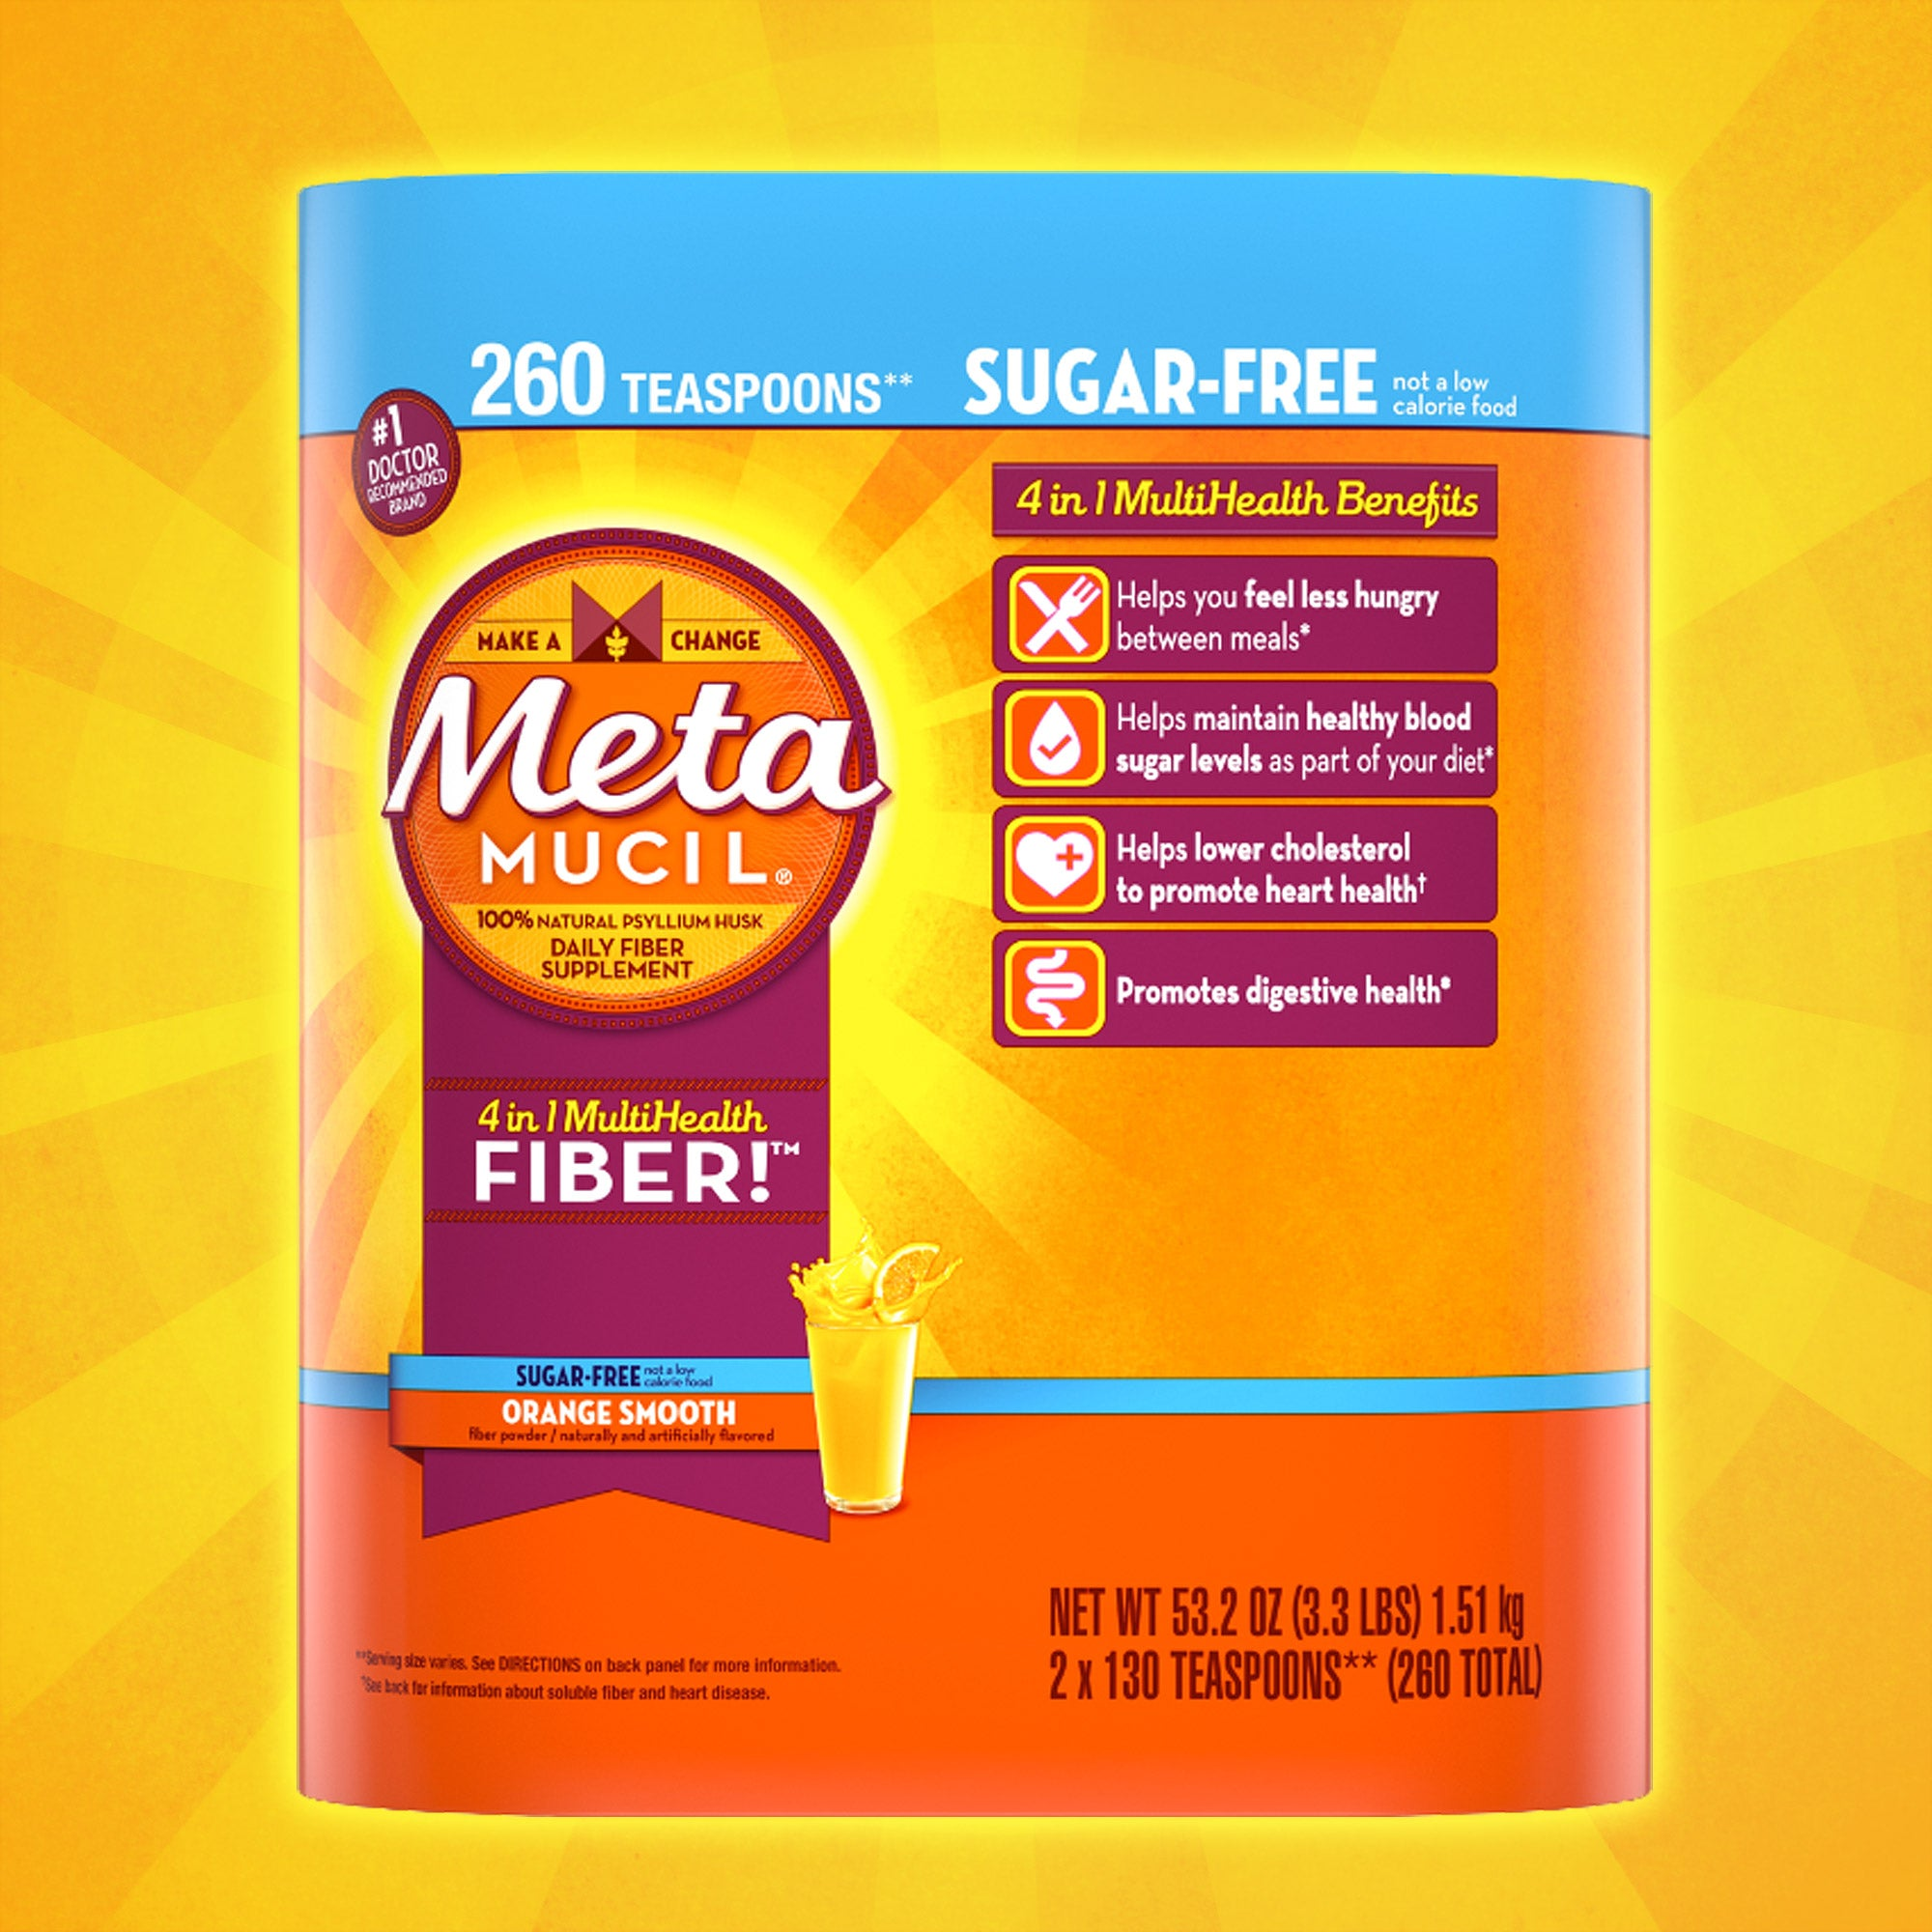 26+ Citrucel Sugar Free Carbohydrates Images